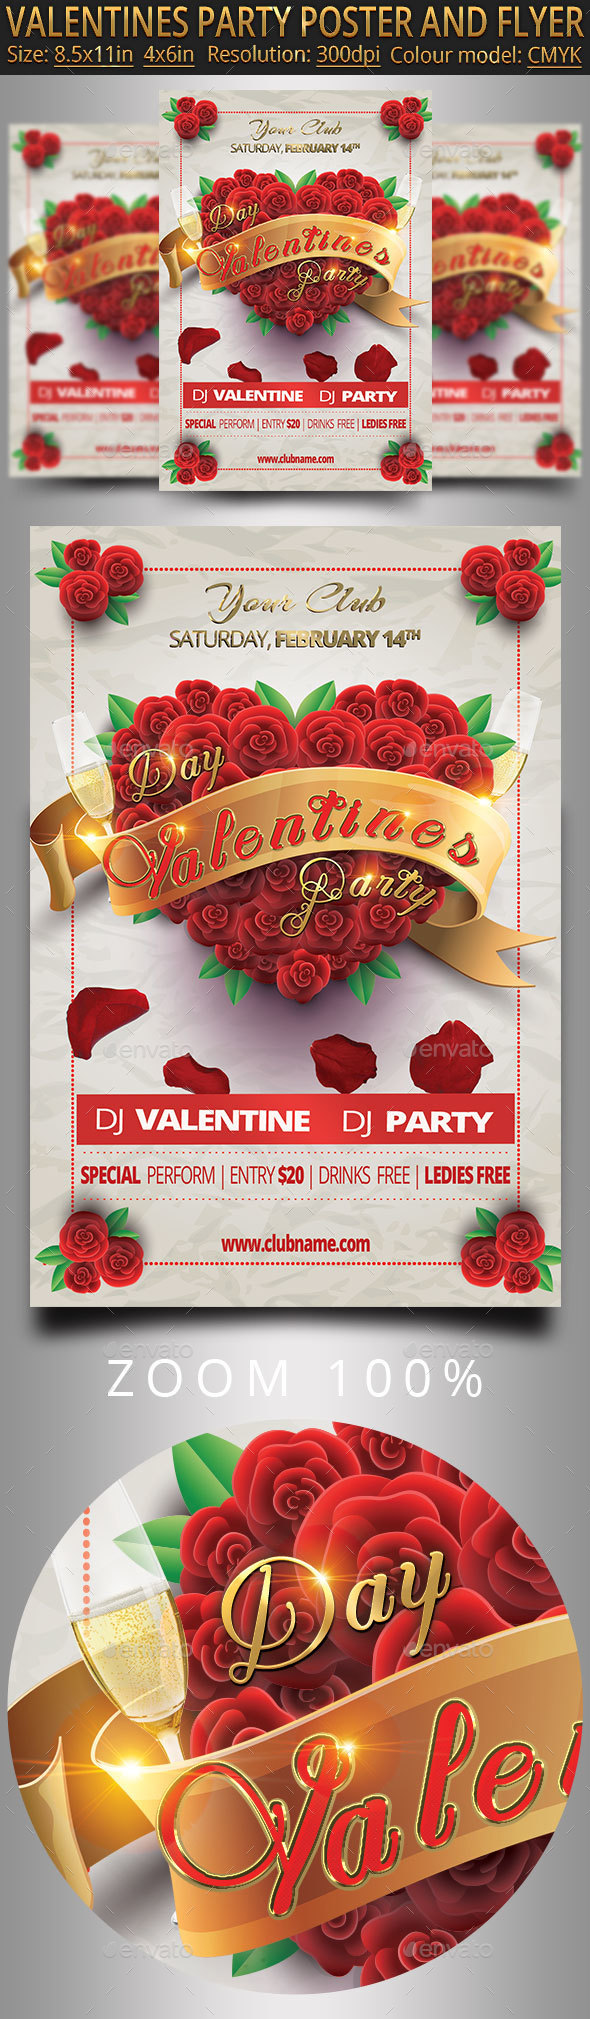 Valentines Party Poster And Flyer